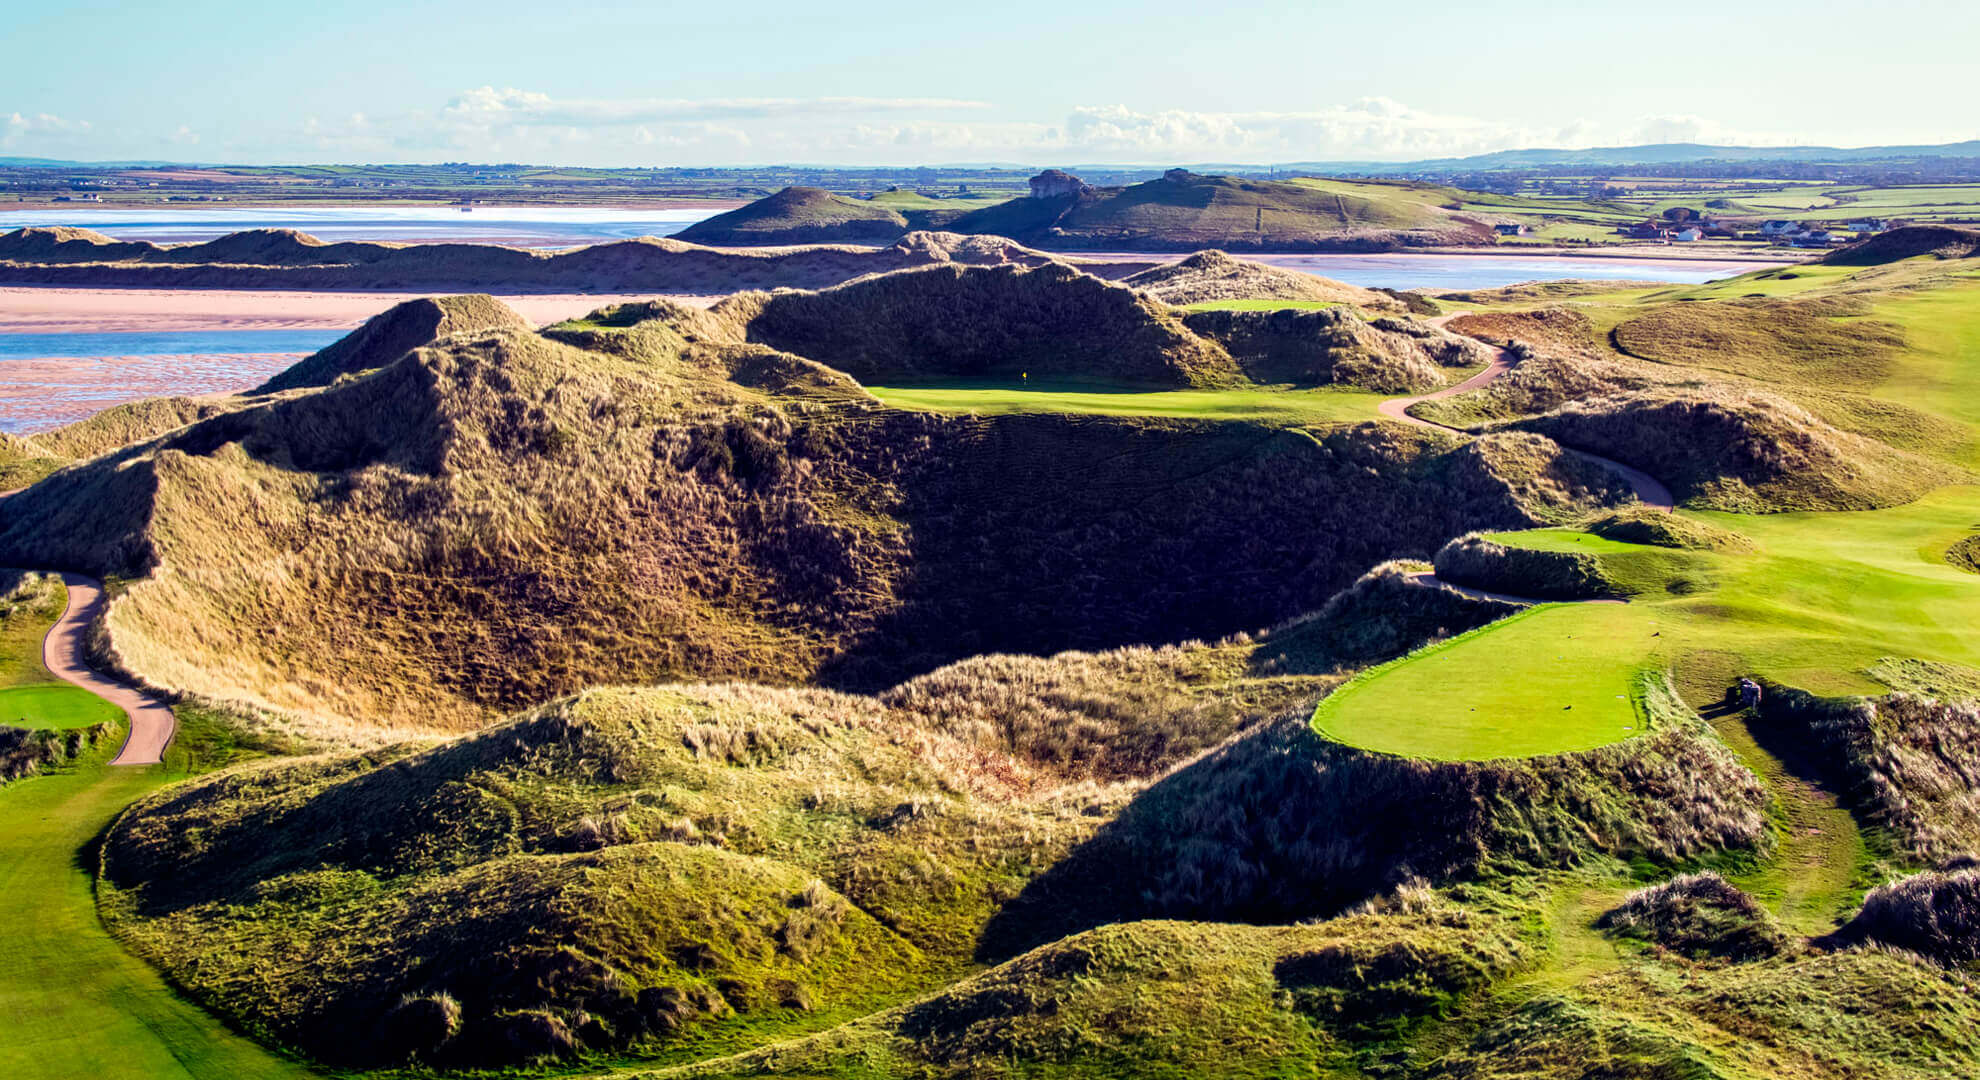 Tralee Golf Course, South & South West, Ireland